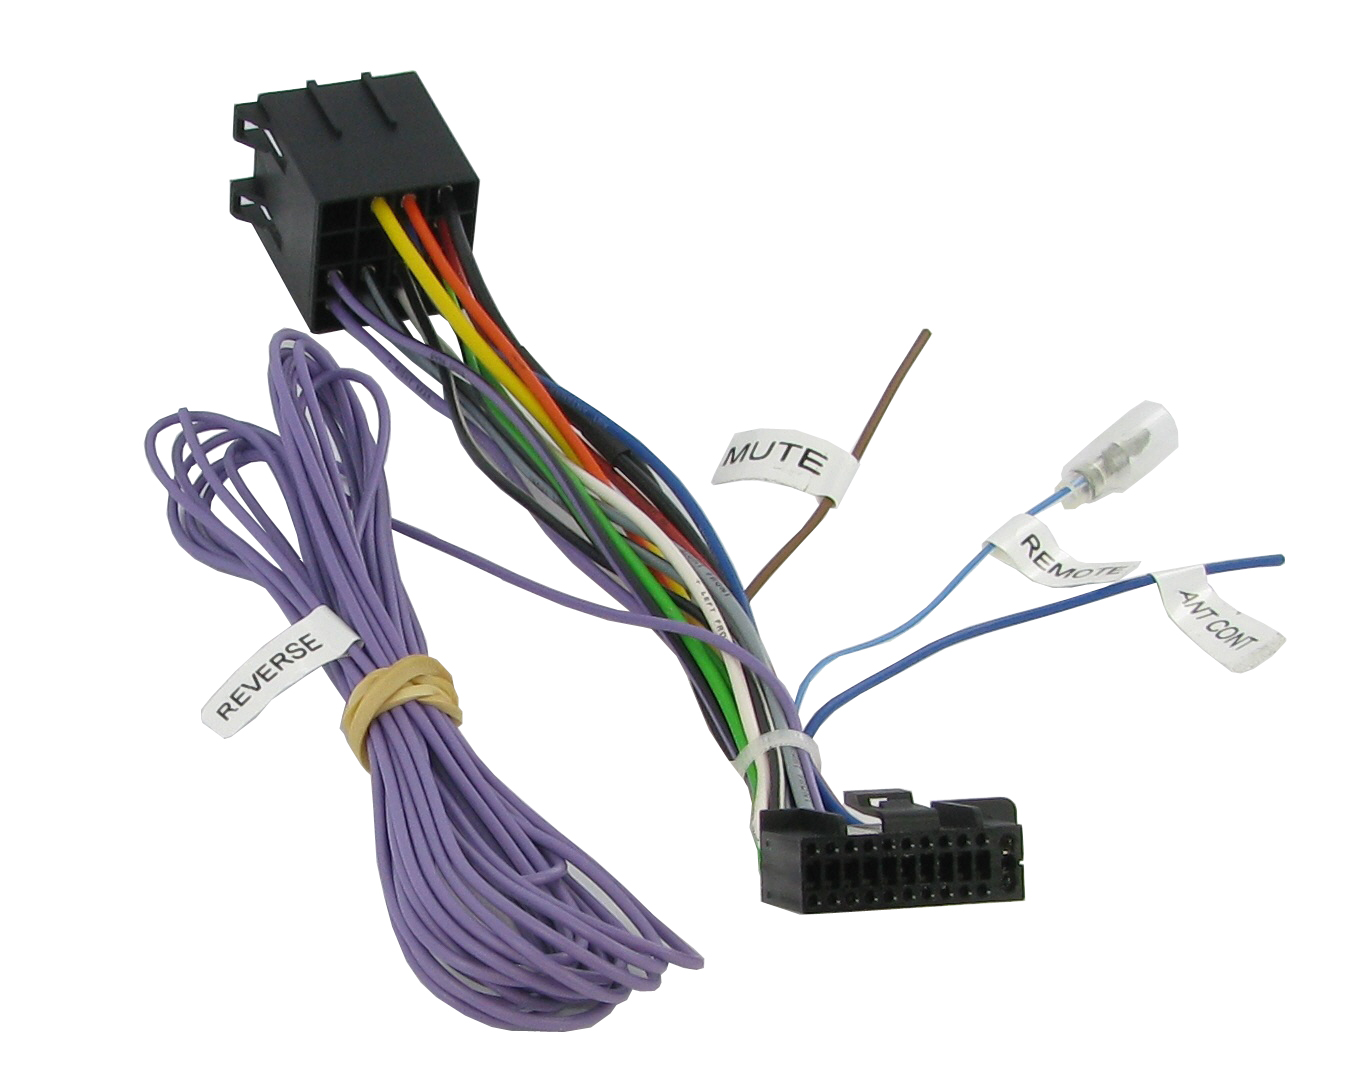 ct21kw05_s installer com kenwood category products category kenwood dnn991hd wiring diagram at virtualis.co